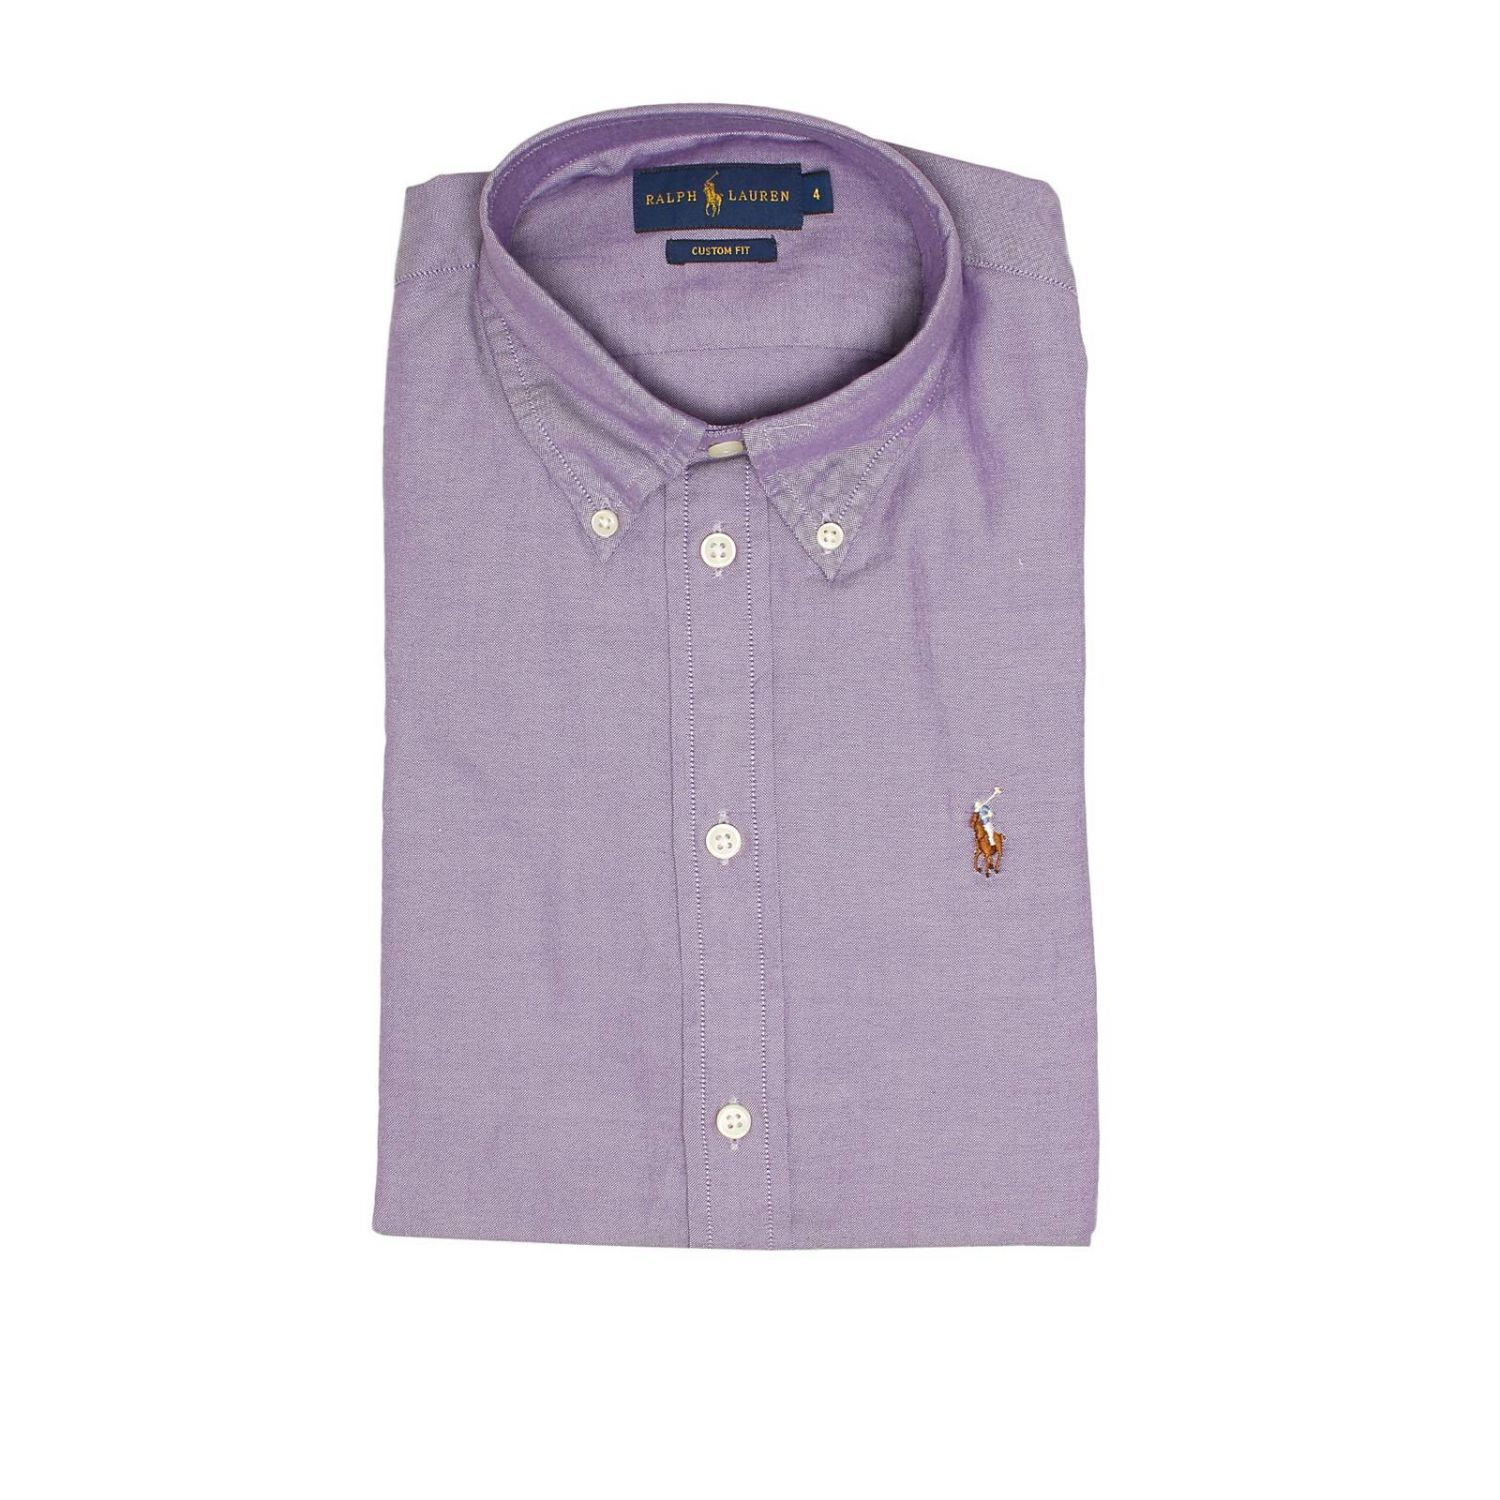 Shirt Shirt Woman Polo Ralph Lauren